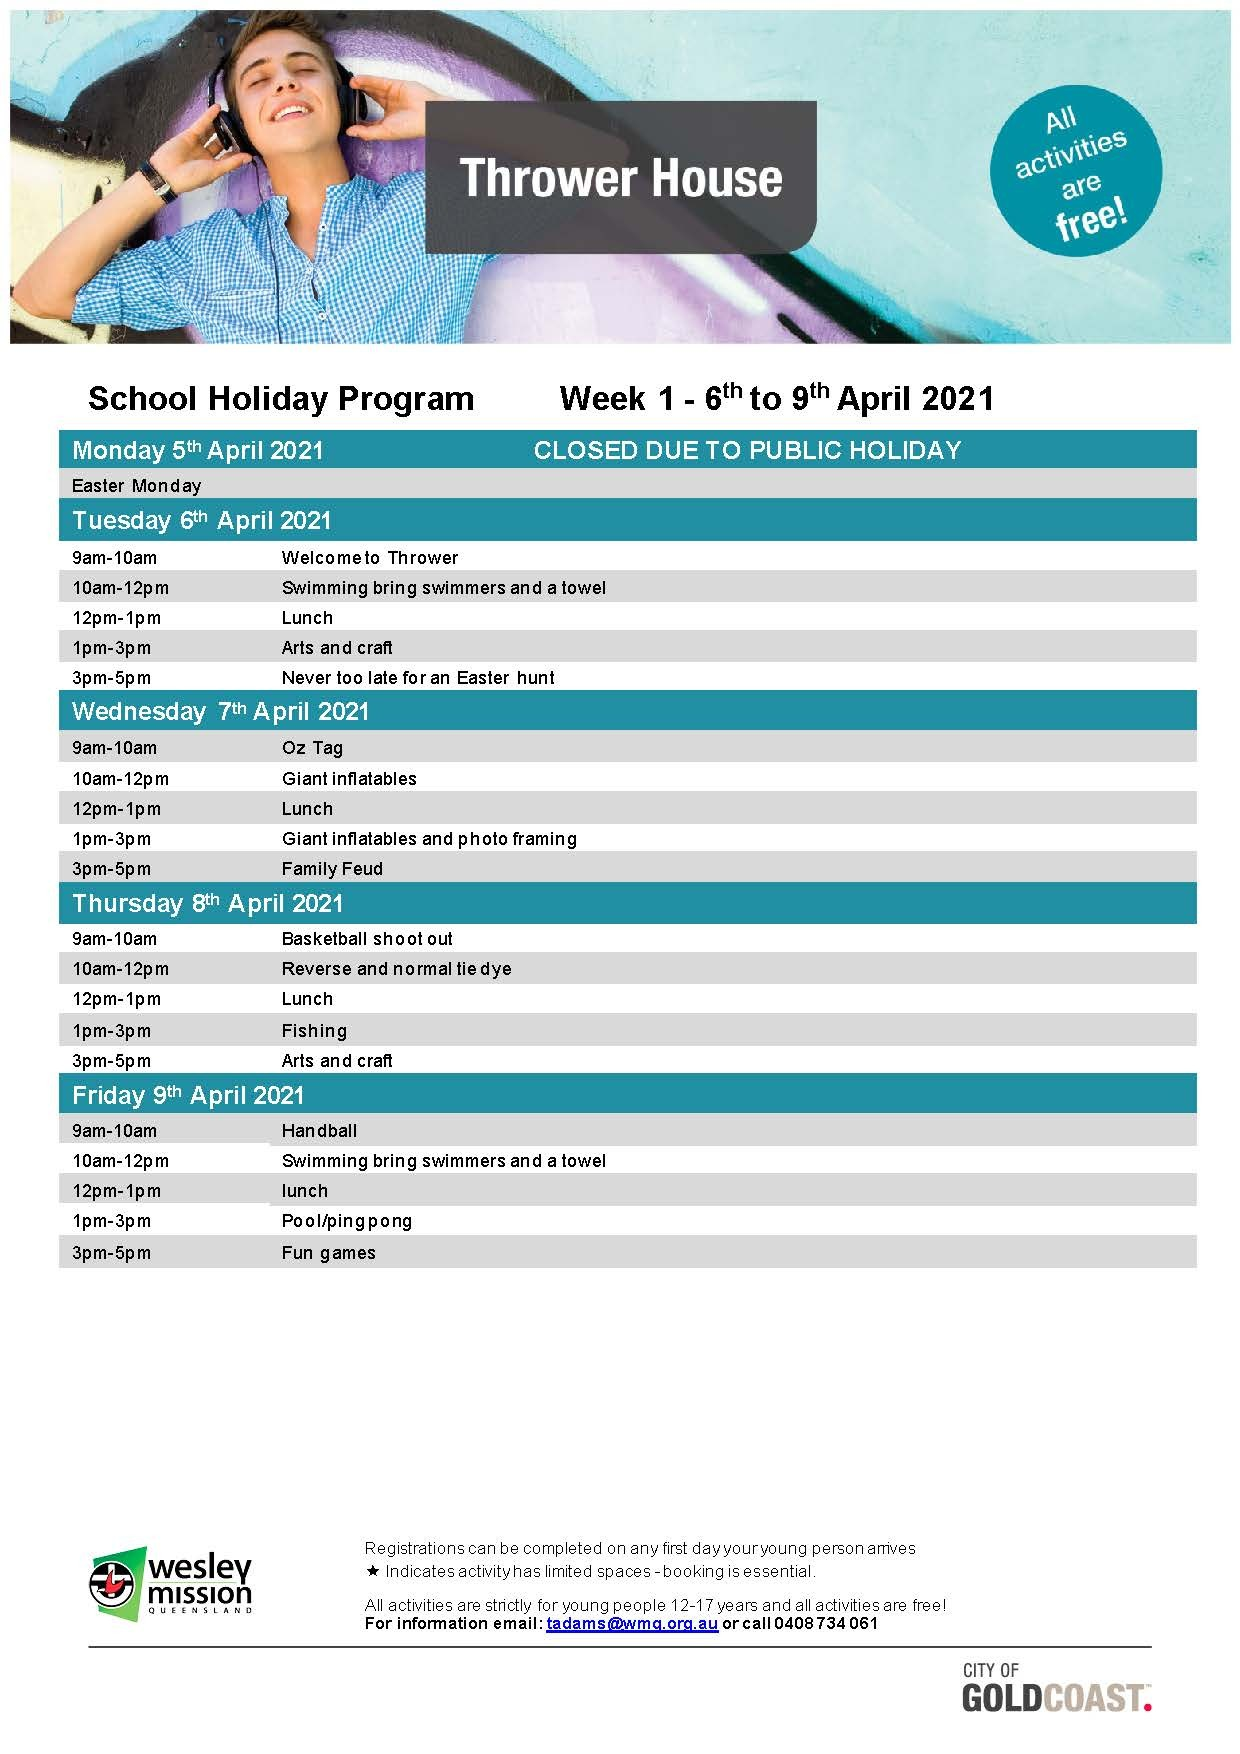 thrower_house_youth_school_holiday_program_april_2021 (A64233030)_Page_1